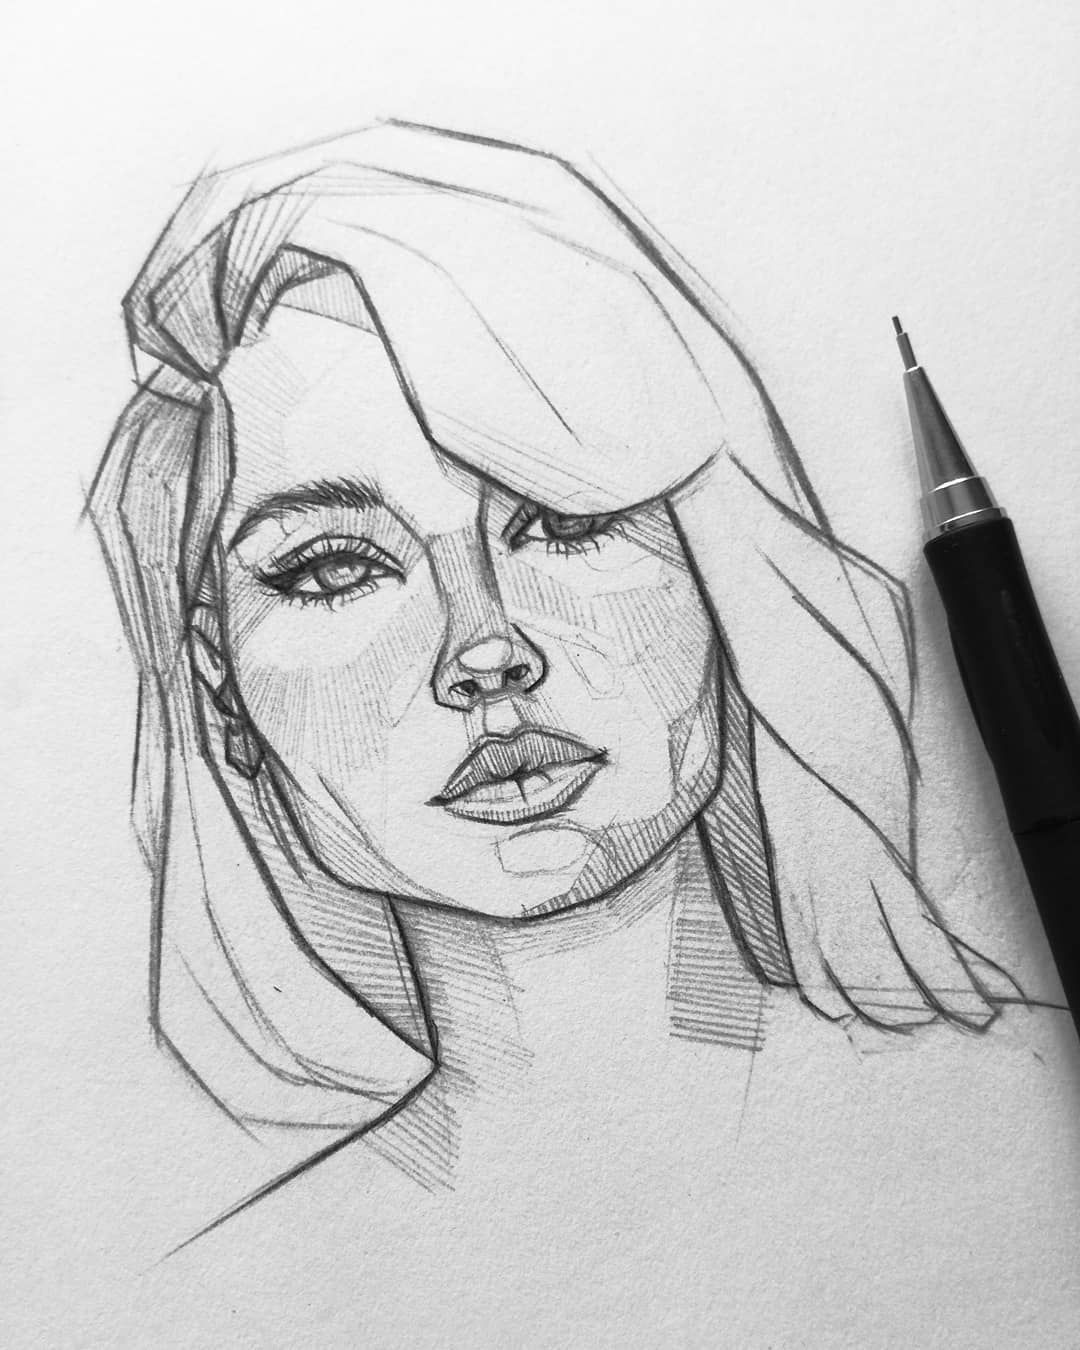 50 Best Pencil Drawings Dessin Au Crayon Artiste Ani Cinski Ani Cinski Est Un Artiste Dessin Au Crayon Allem In 2020 Art Drawings Sketches Sketches Drawing Sketches That's a great suggestion tomas! pinterest